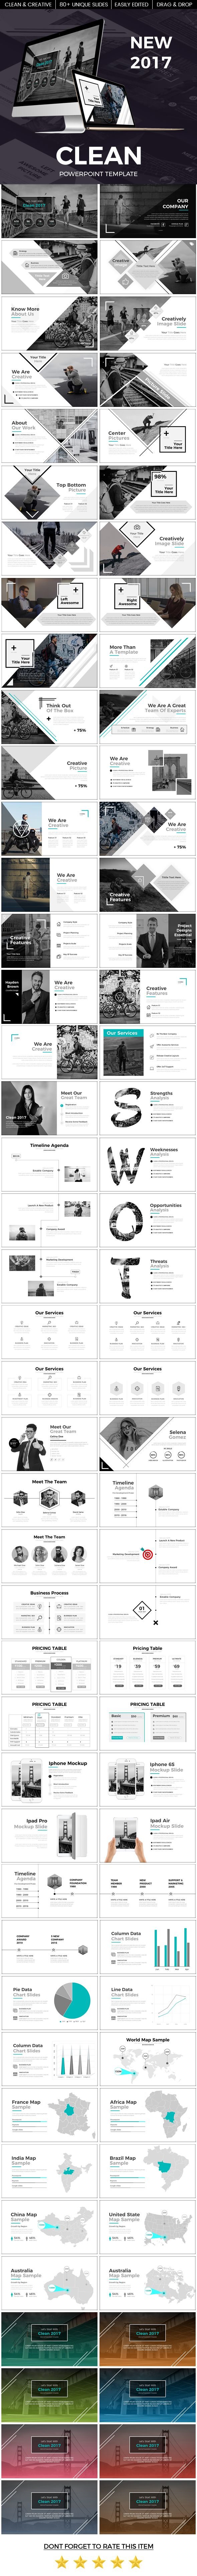 Clean 2017 Powerpoint Template — Powerpoint PPTX #flow chart #infographics • Download ➝ https://graphicriver.net/item/clean-2017-powerpoint-template/19566467?ref=pxcr